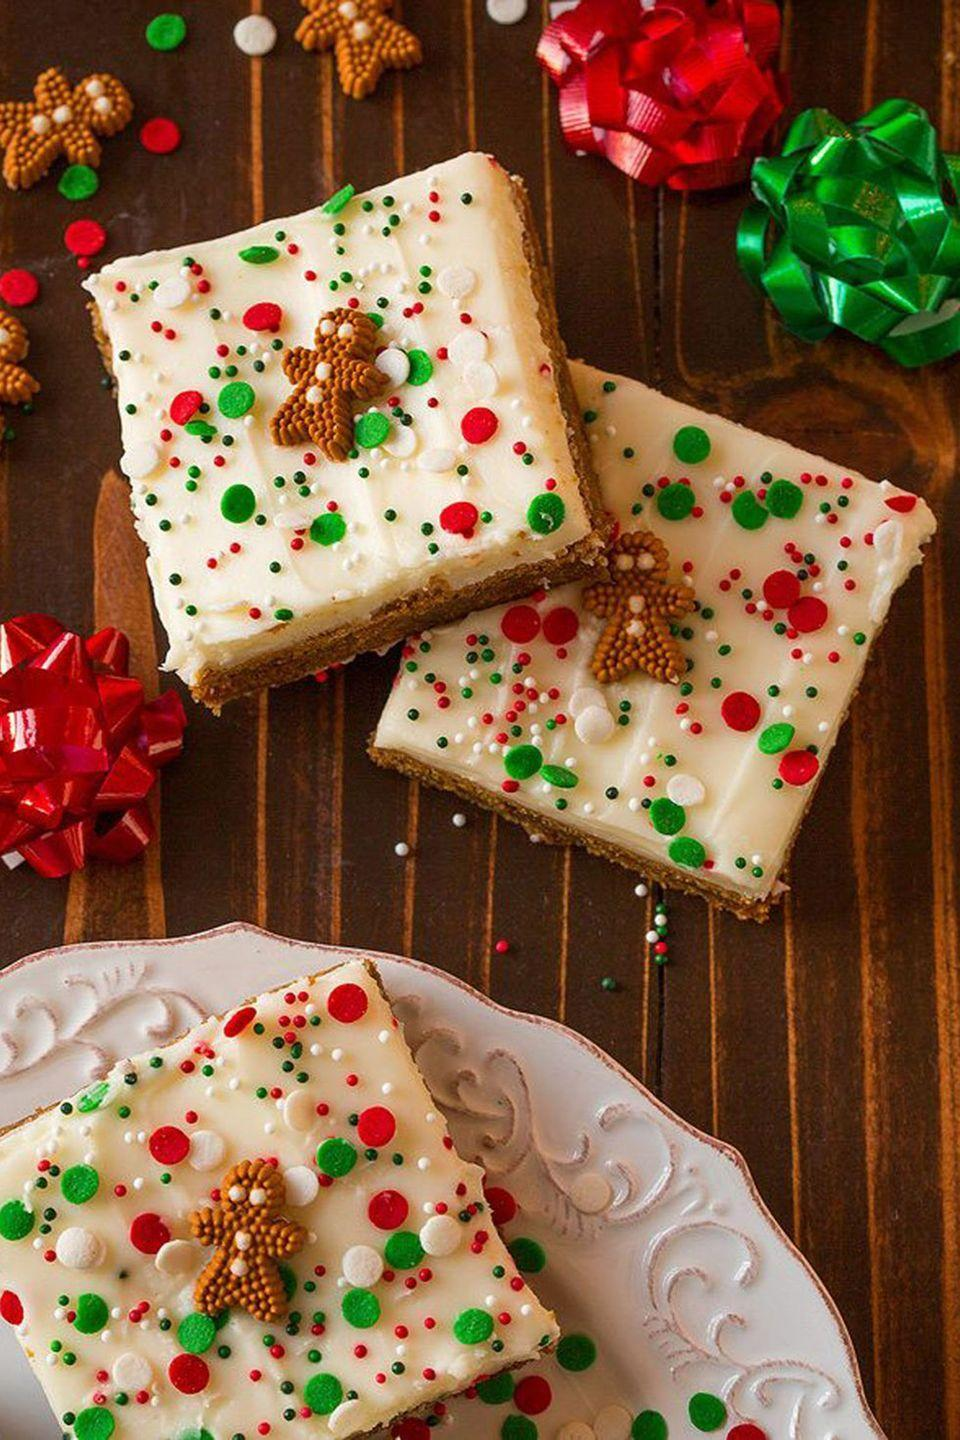 """<p>Oh the weather outside is frightful, but the smells in the kitchen are <em>so</em> delightful! Whip up your own crowd-pleasing treat—like these unbelievably good <a href=""""https://www.cookingclassy.com/gingerbread-bars-cream-cheese-frosting/"""" rel=""""nofollow noopener"""" target=""""_blank"""" data-ylk=""""slk:gingerbread bars"""" class=""""link rapid-noclick-resp"""">gingerbread bars</a>—and have each guest bring their favorite <a href=""""https://www.countryliving.com/food-drinks/g1036/easy-christmas-desserts/"""" rel=""""nofollow noopener"""" target=""""_blank"""" data-ylk=""""slk:Christmas dessert"""" class=""""link rapid-noclick-resp"""">Christmas dessert</a> for a delicious December get-together.</p>"""